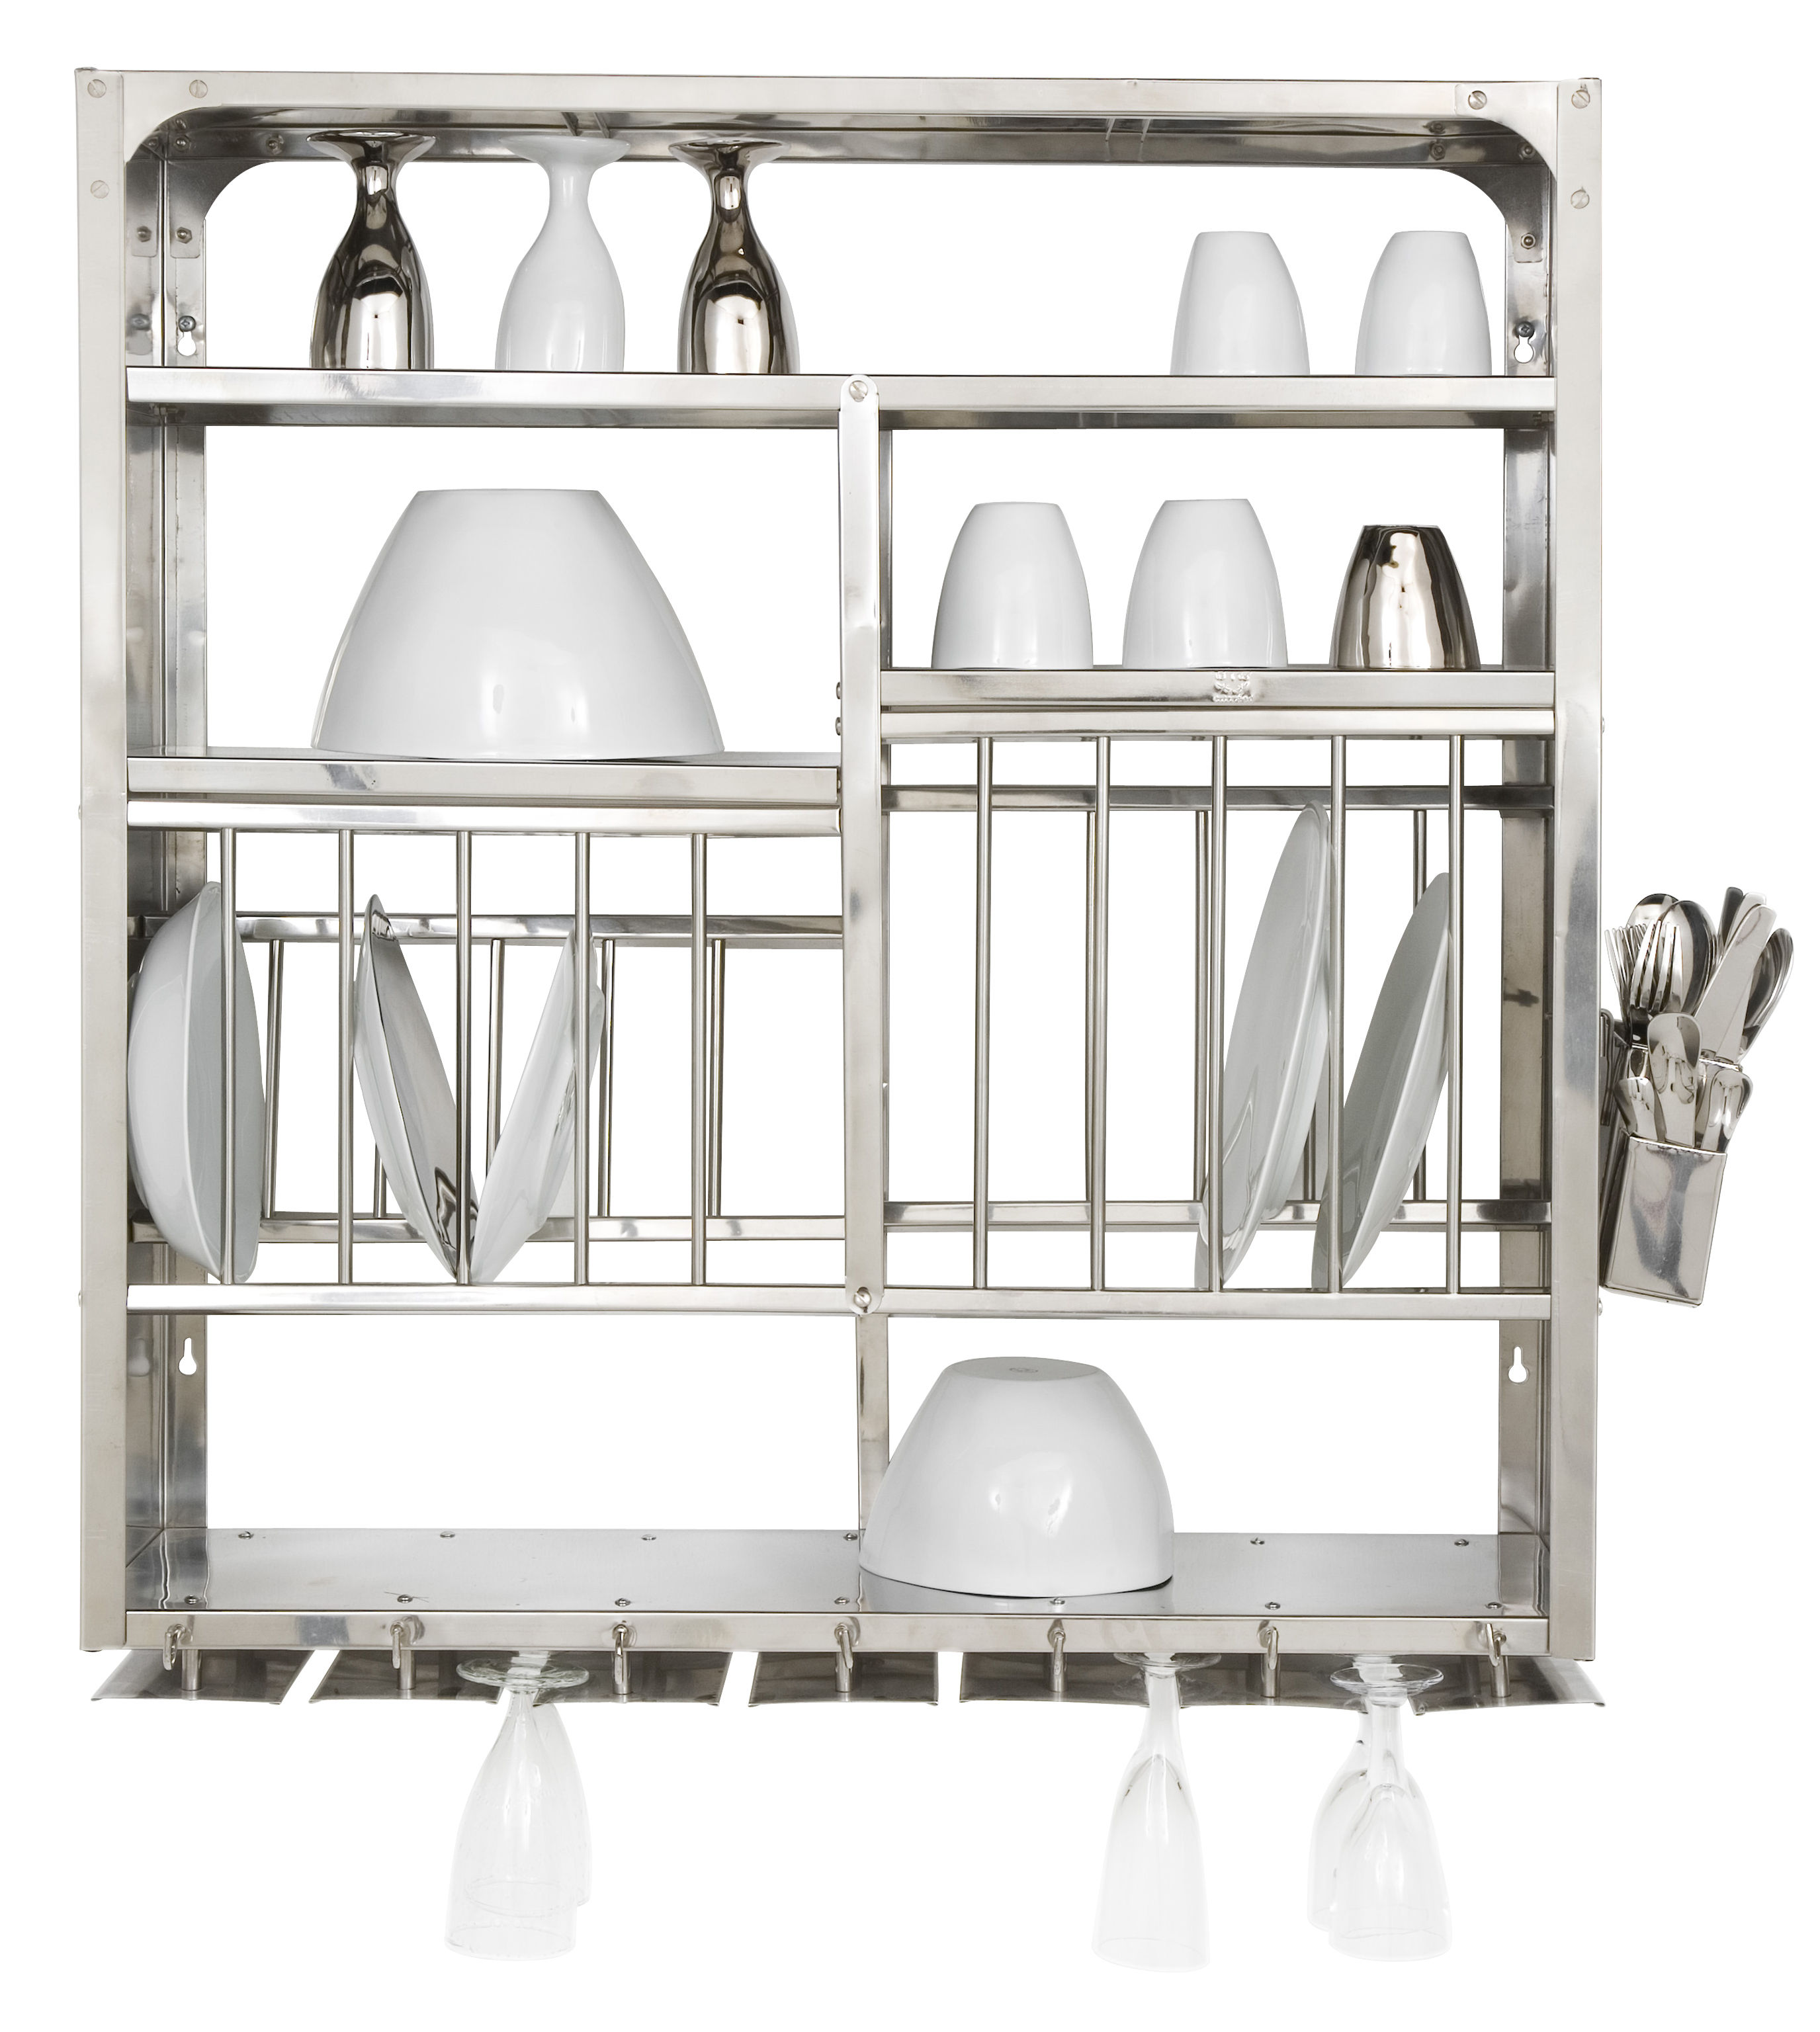 Kitchenware - Cool Kitchen Gadgets - Large Draining rack by Tsé-Tsé - Inox - Stainless steel